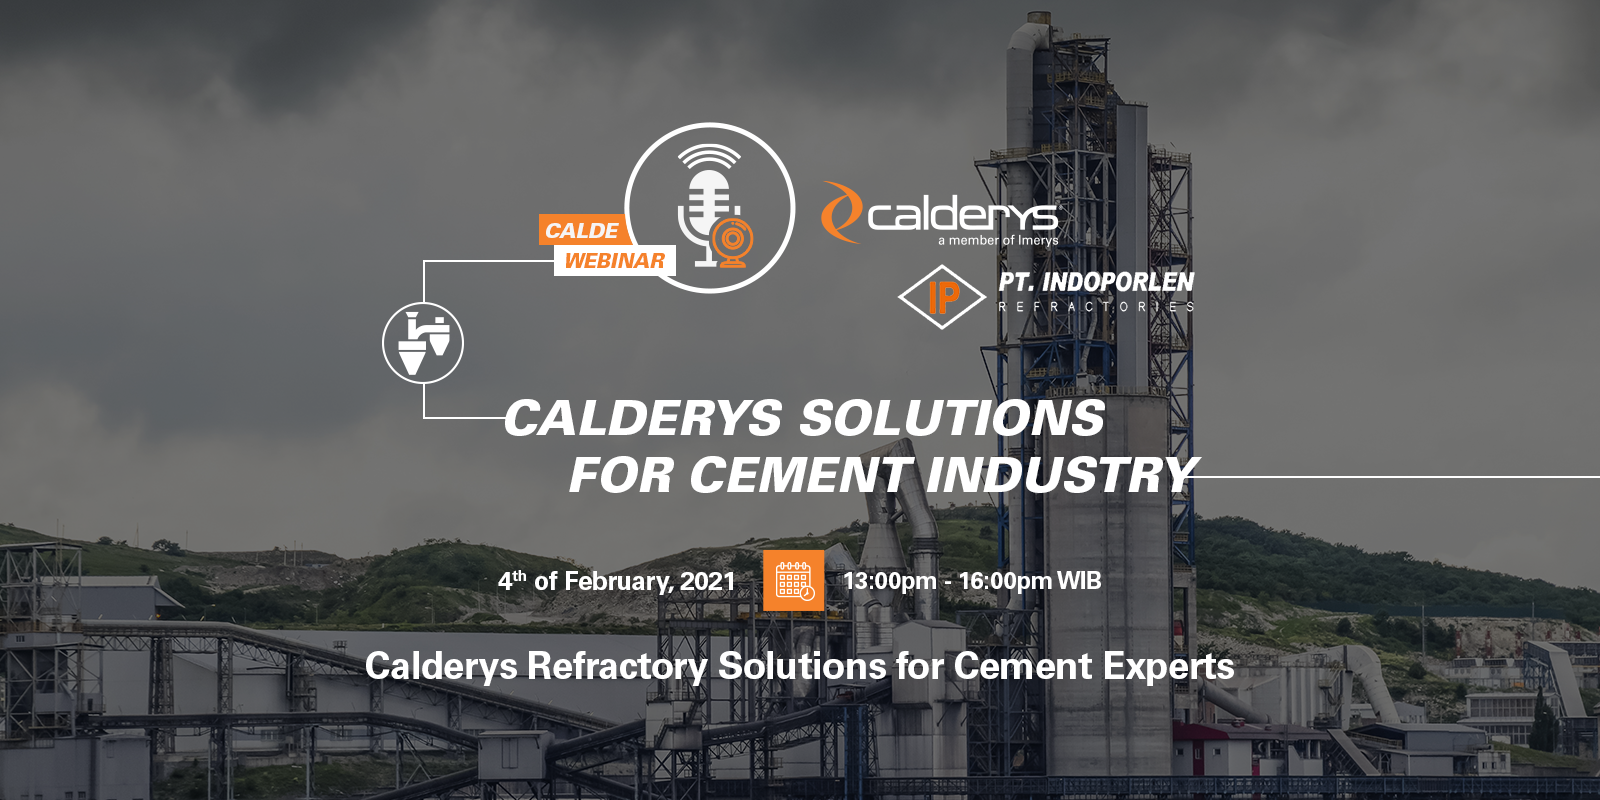 Calde Webinar: Solutions for Cement Industry